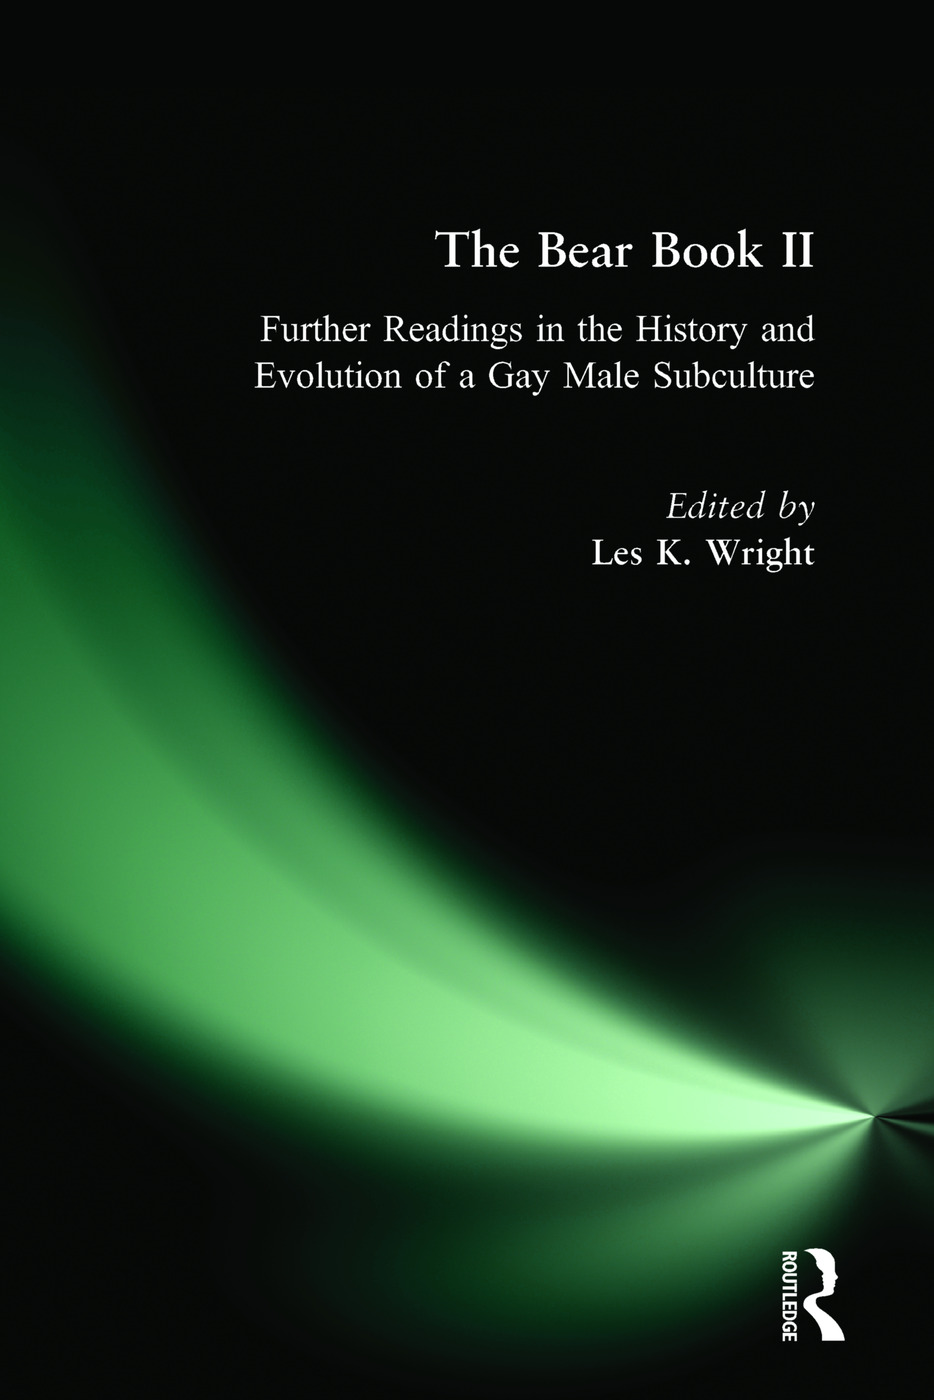 The Bear Book II: Further Readings in the History and Evolution of a Gay Male Subculture (Paperback) book cover